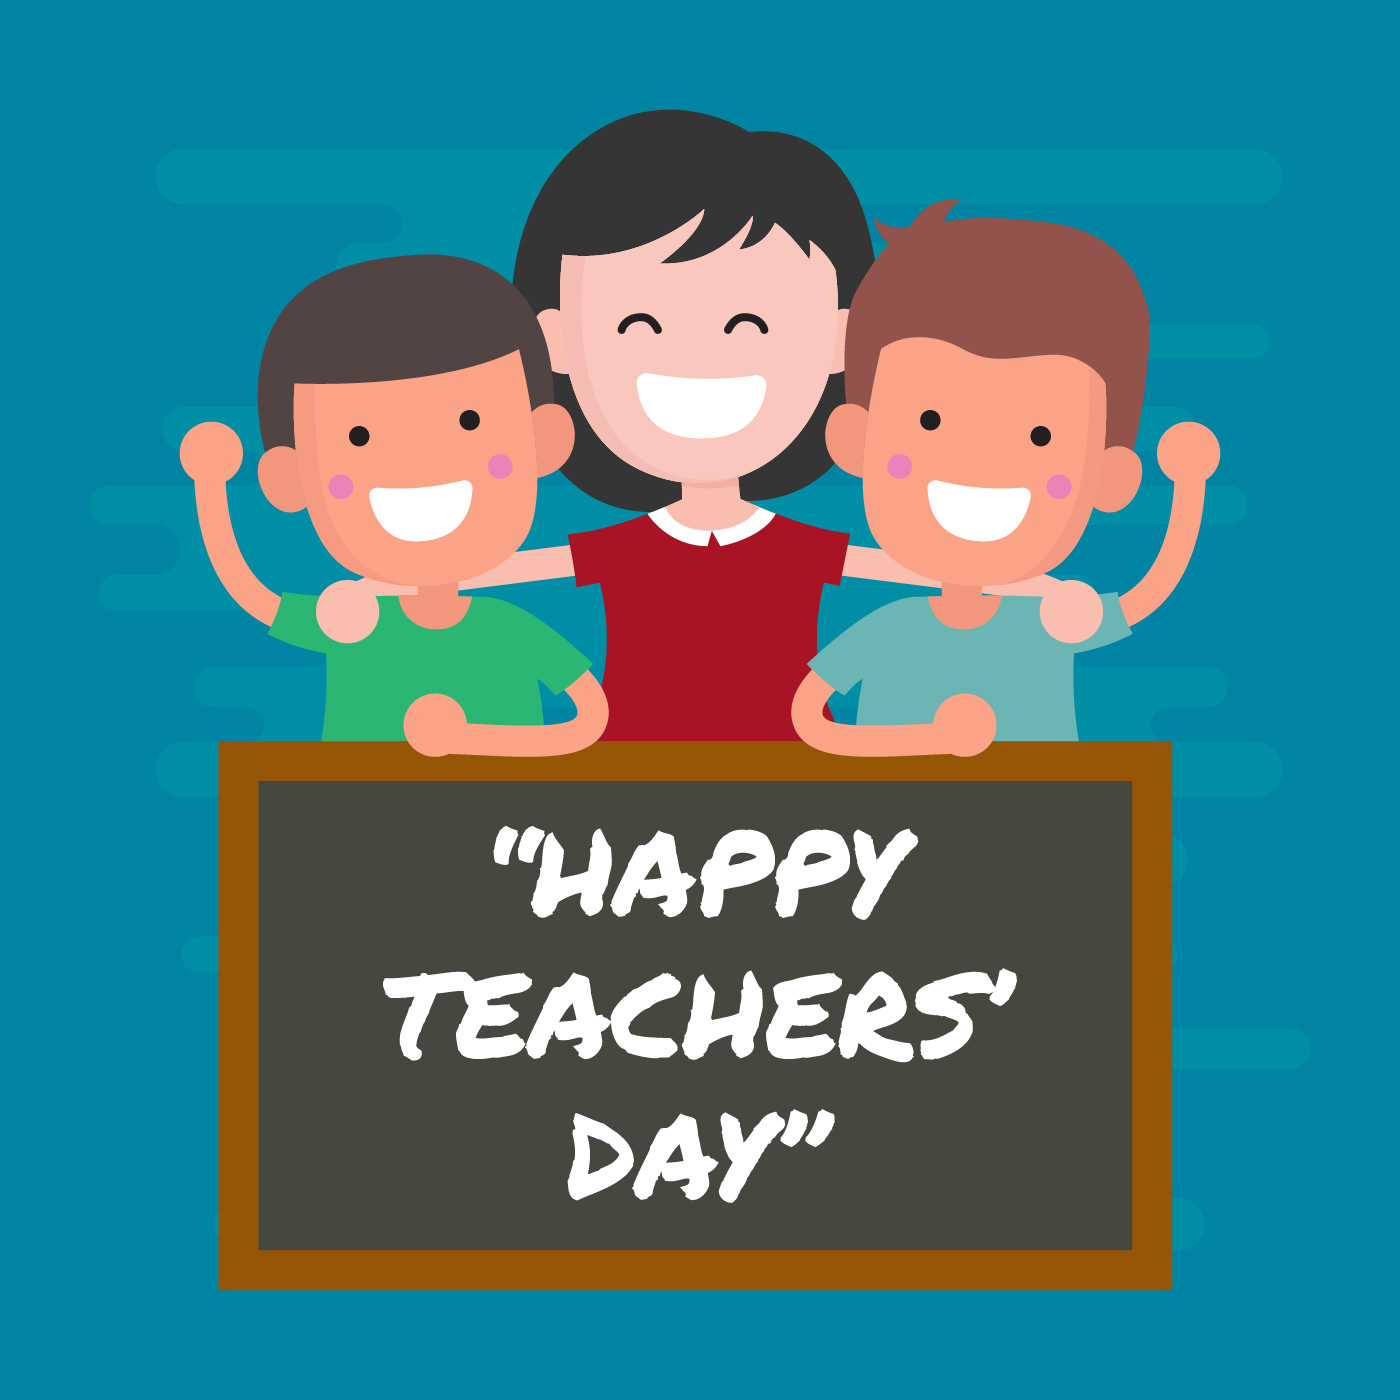 Happy Teachers Day Greeting Vector Illustration - Download ...